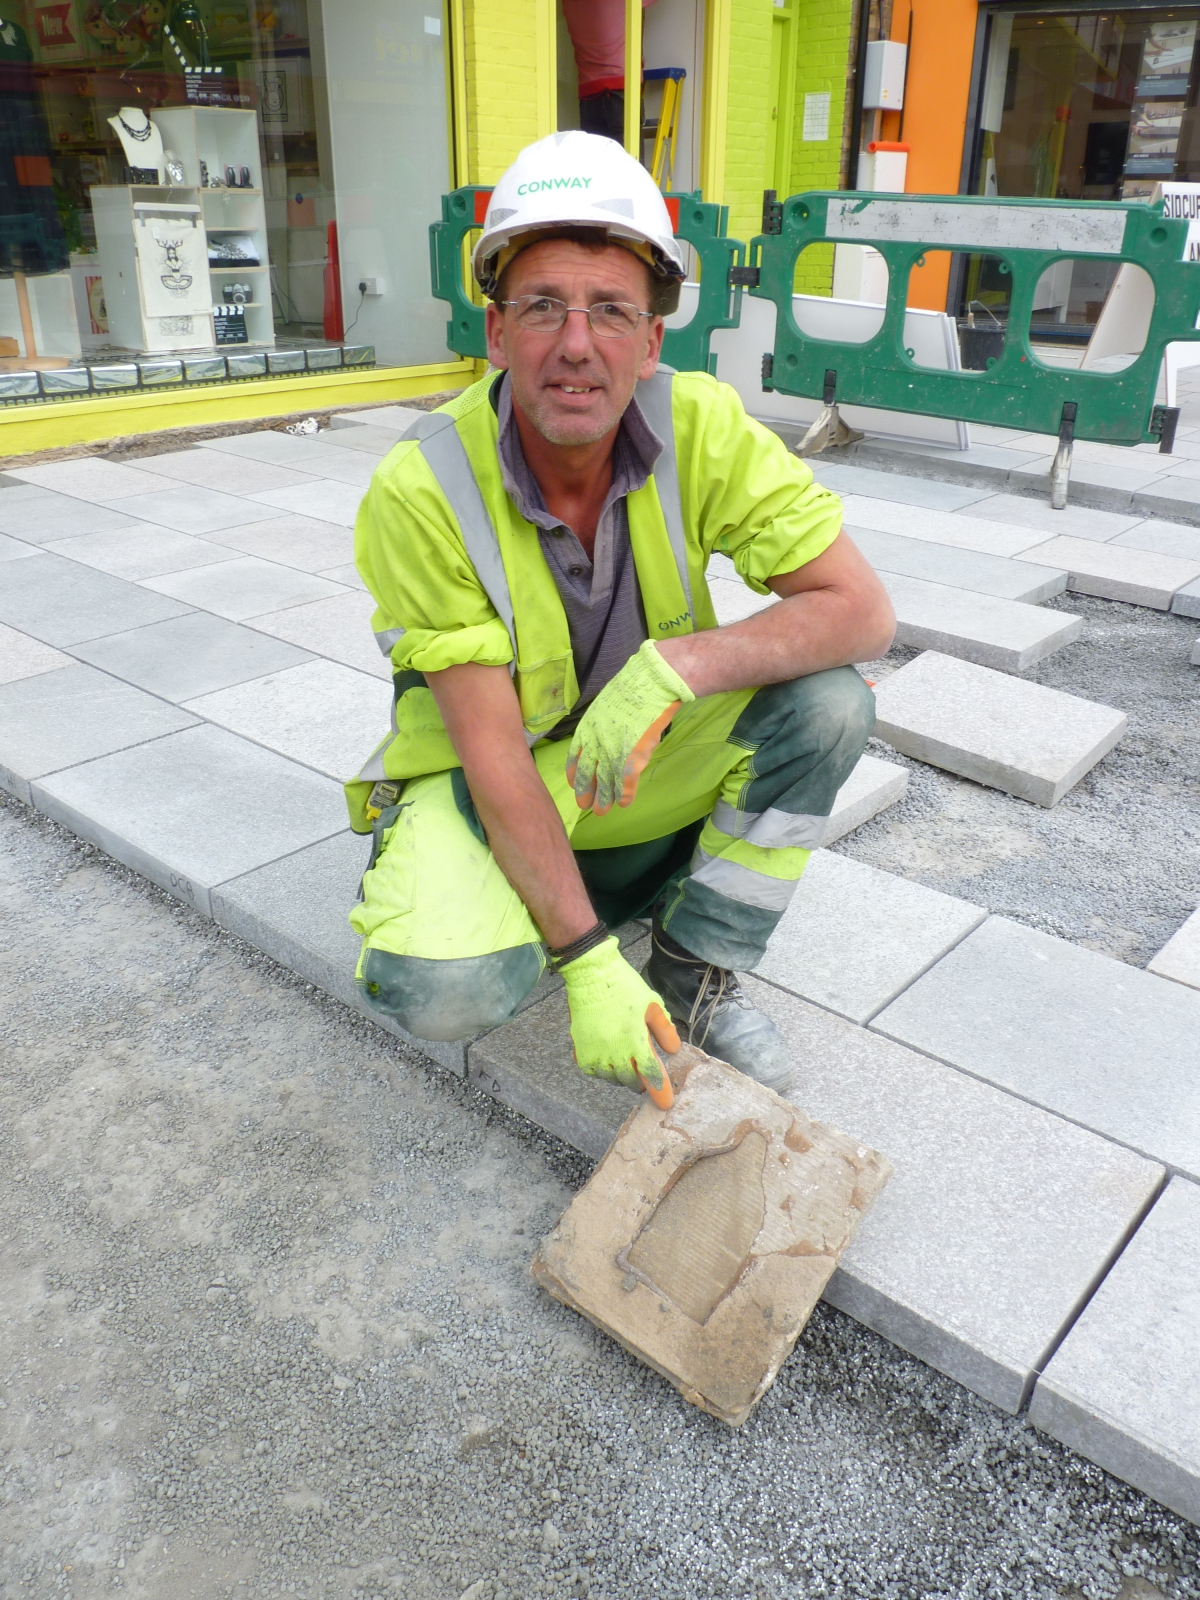 Victorian time capsule found in Sidcup during £1.8million revamp